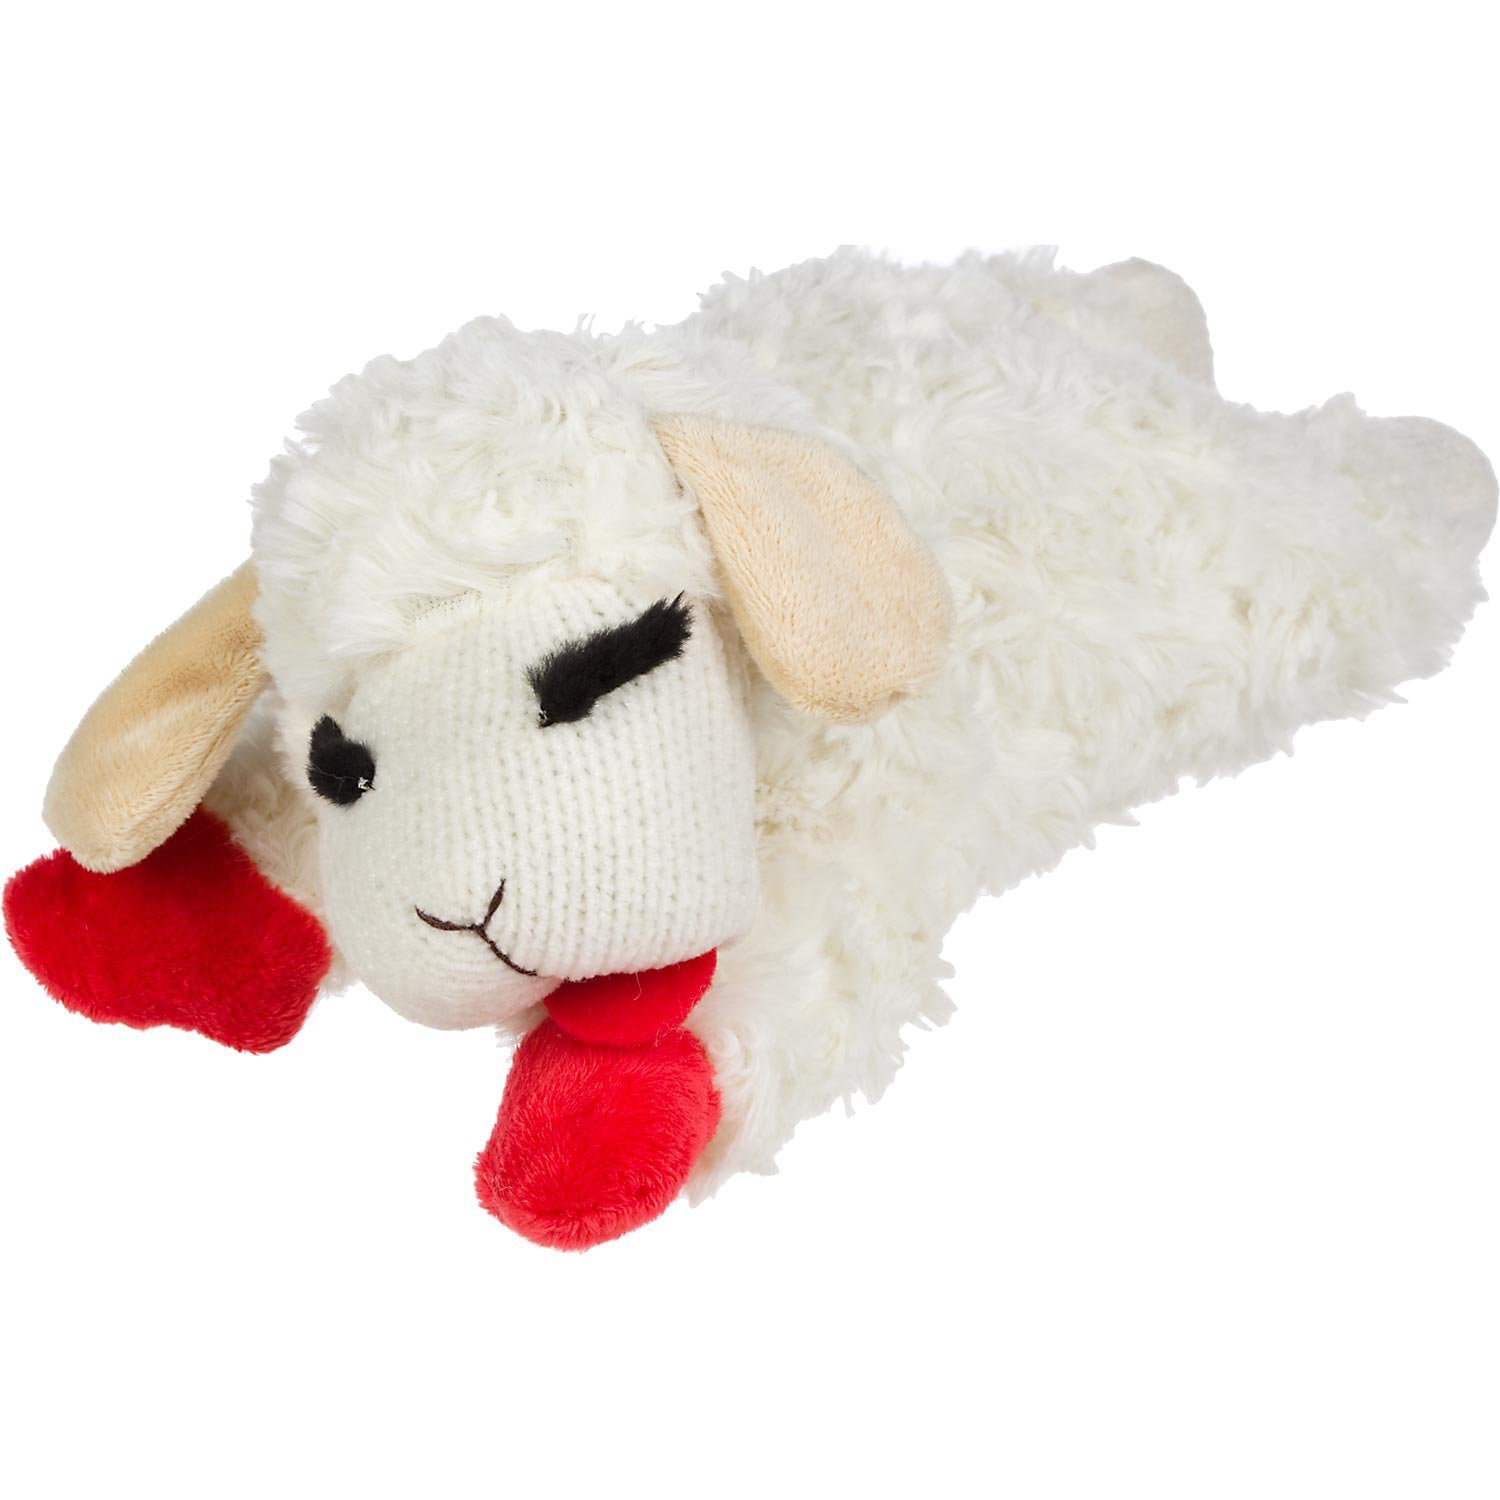 Dog Toy - Lamb Chop - Squeaker Toy - 4 Sizes